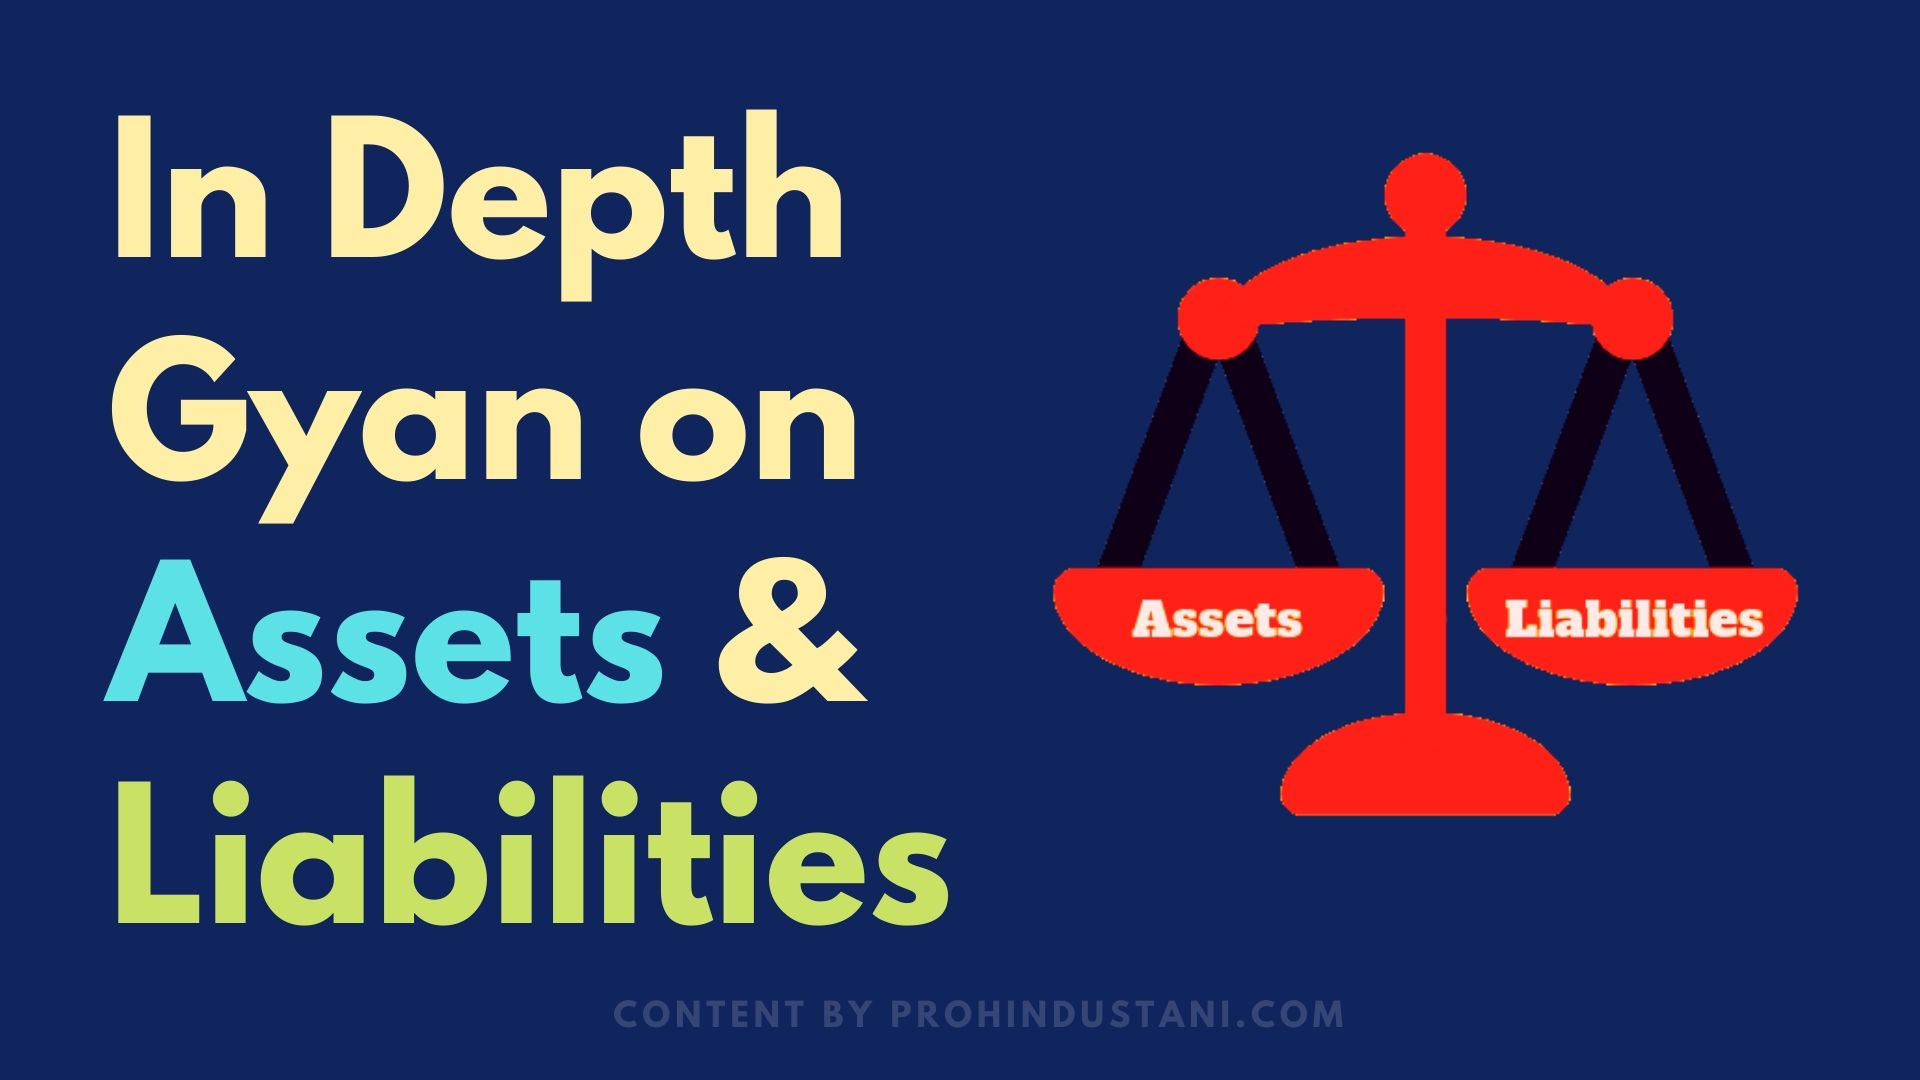 liabilities meaning in Hindi- Assets और Liabilities क्या है